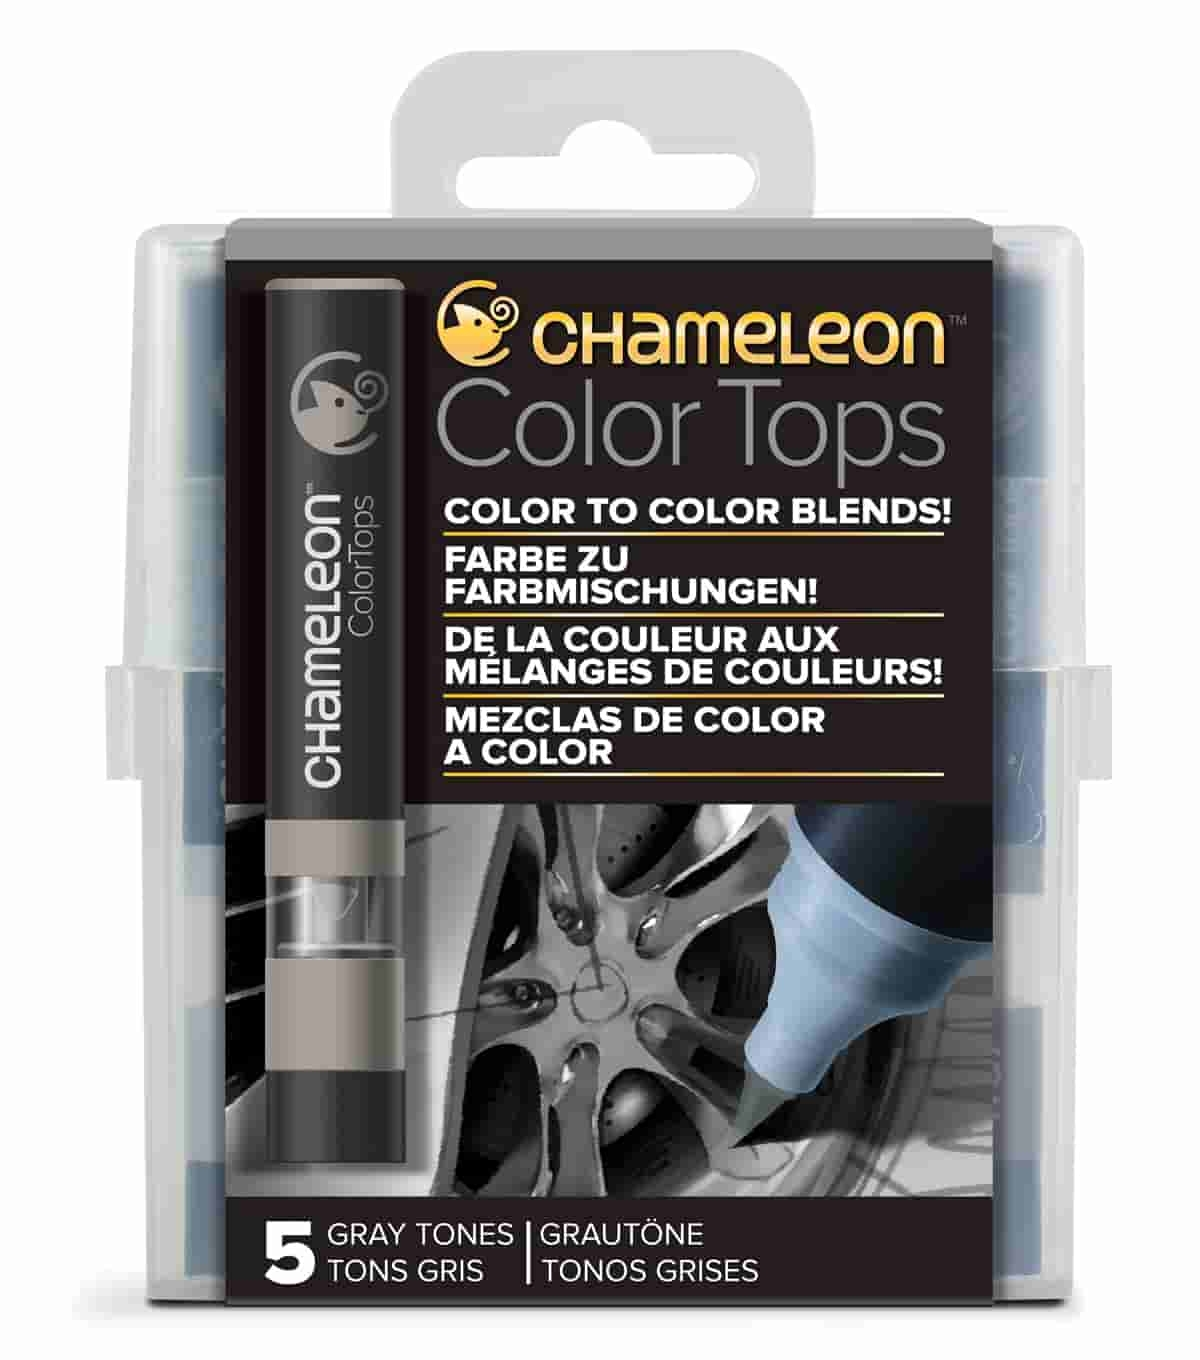 Chameleon Colour Top Gray Tones Set